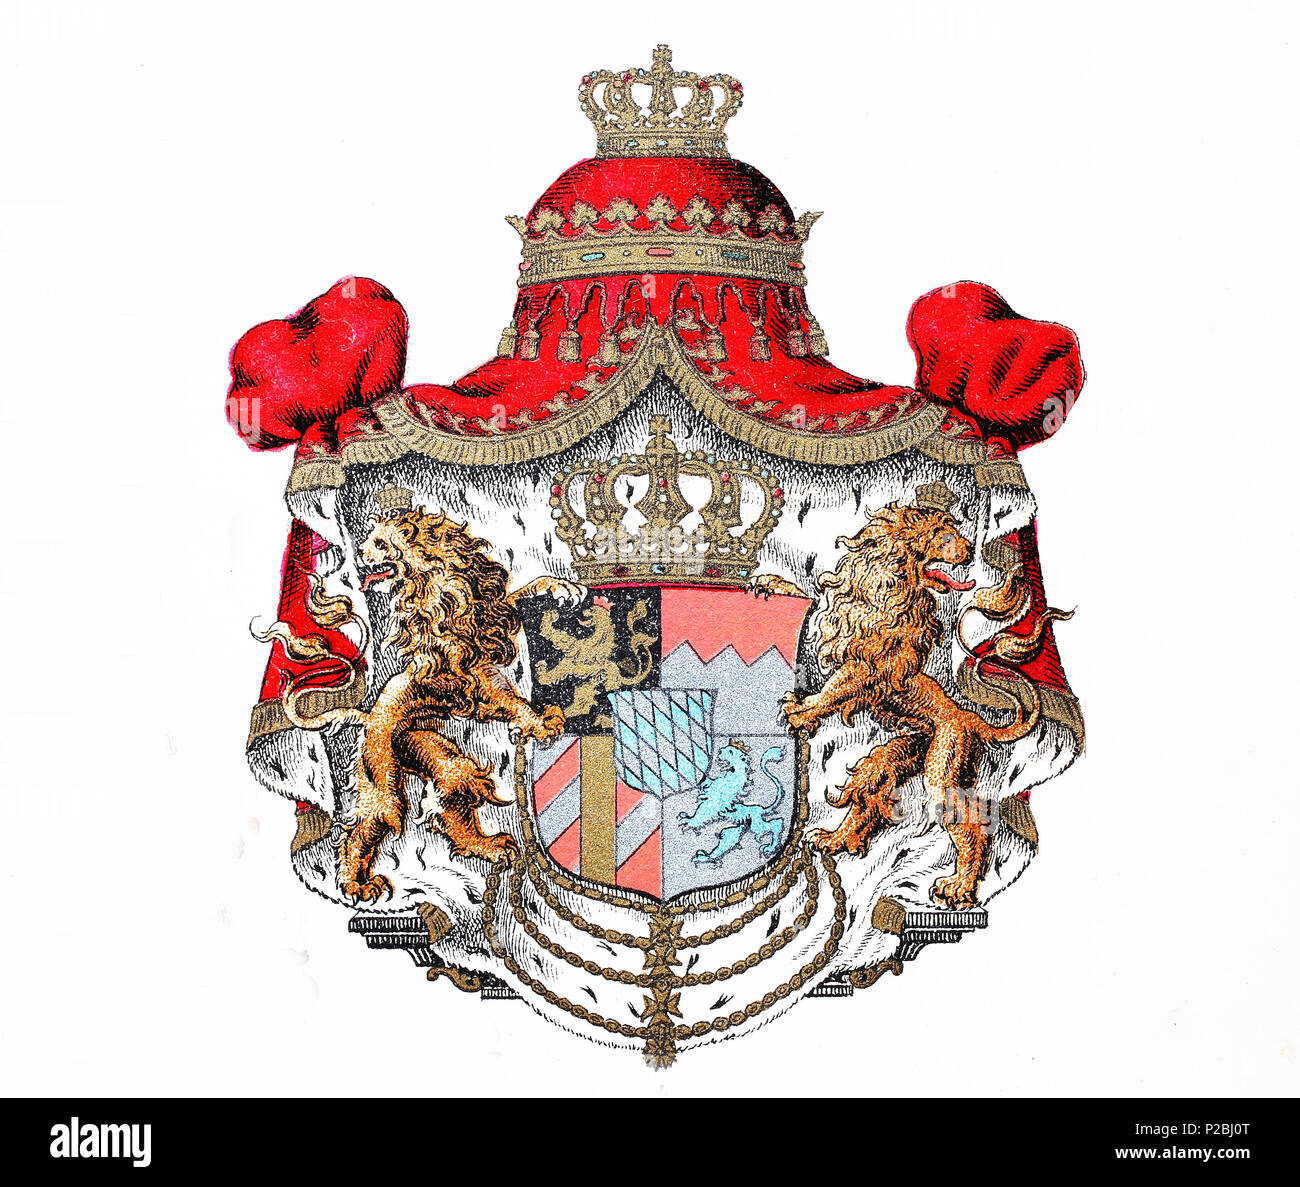 Coat of arms of the kingdom of bavaria, germany, Wappen des Königreich Bayern, Deutschland, digital improved reproduction from an original print from the 19th century, 1881 - Stock Image